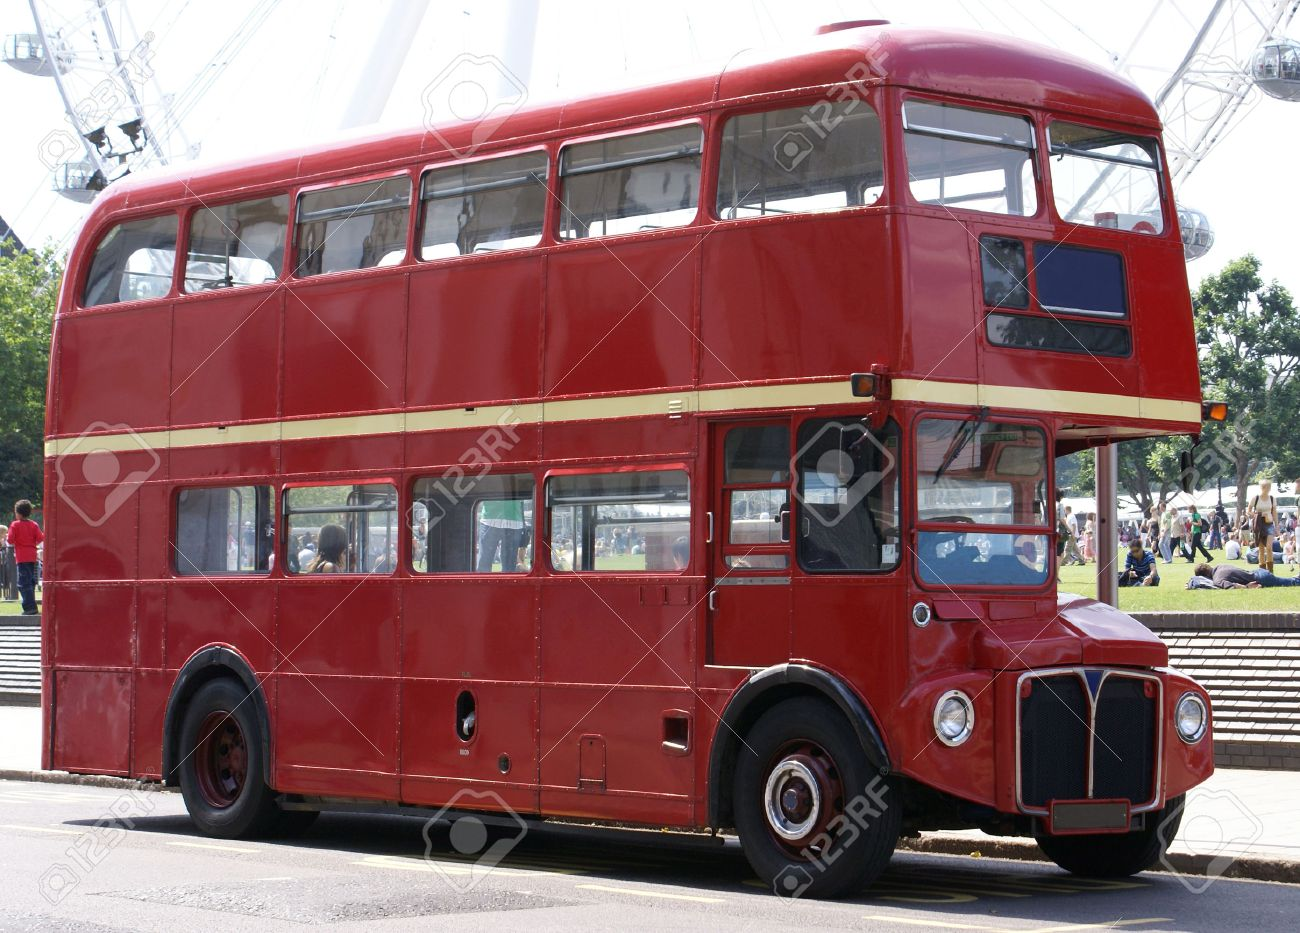 London Bus with faint outline of the London Eye in the Background Stock Photo - 1438061